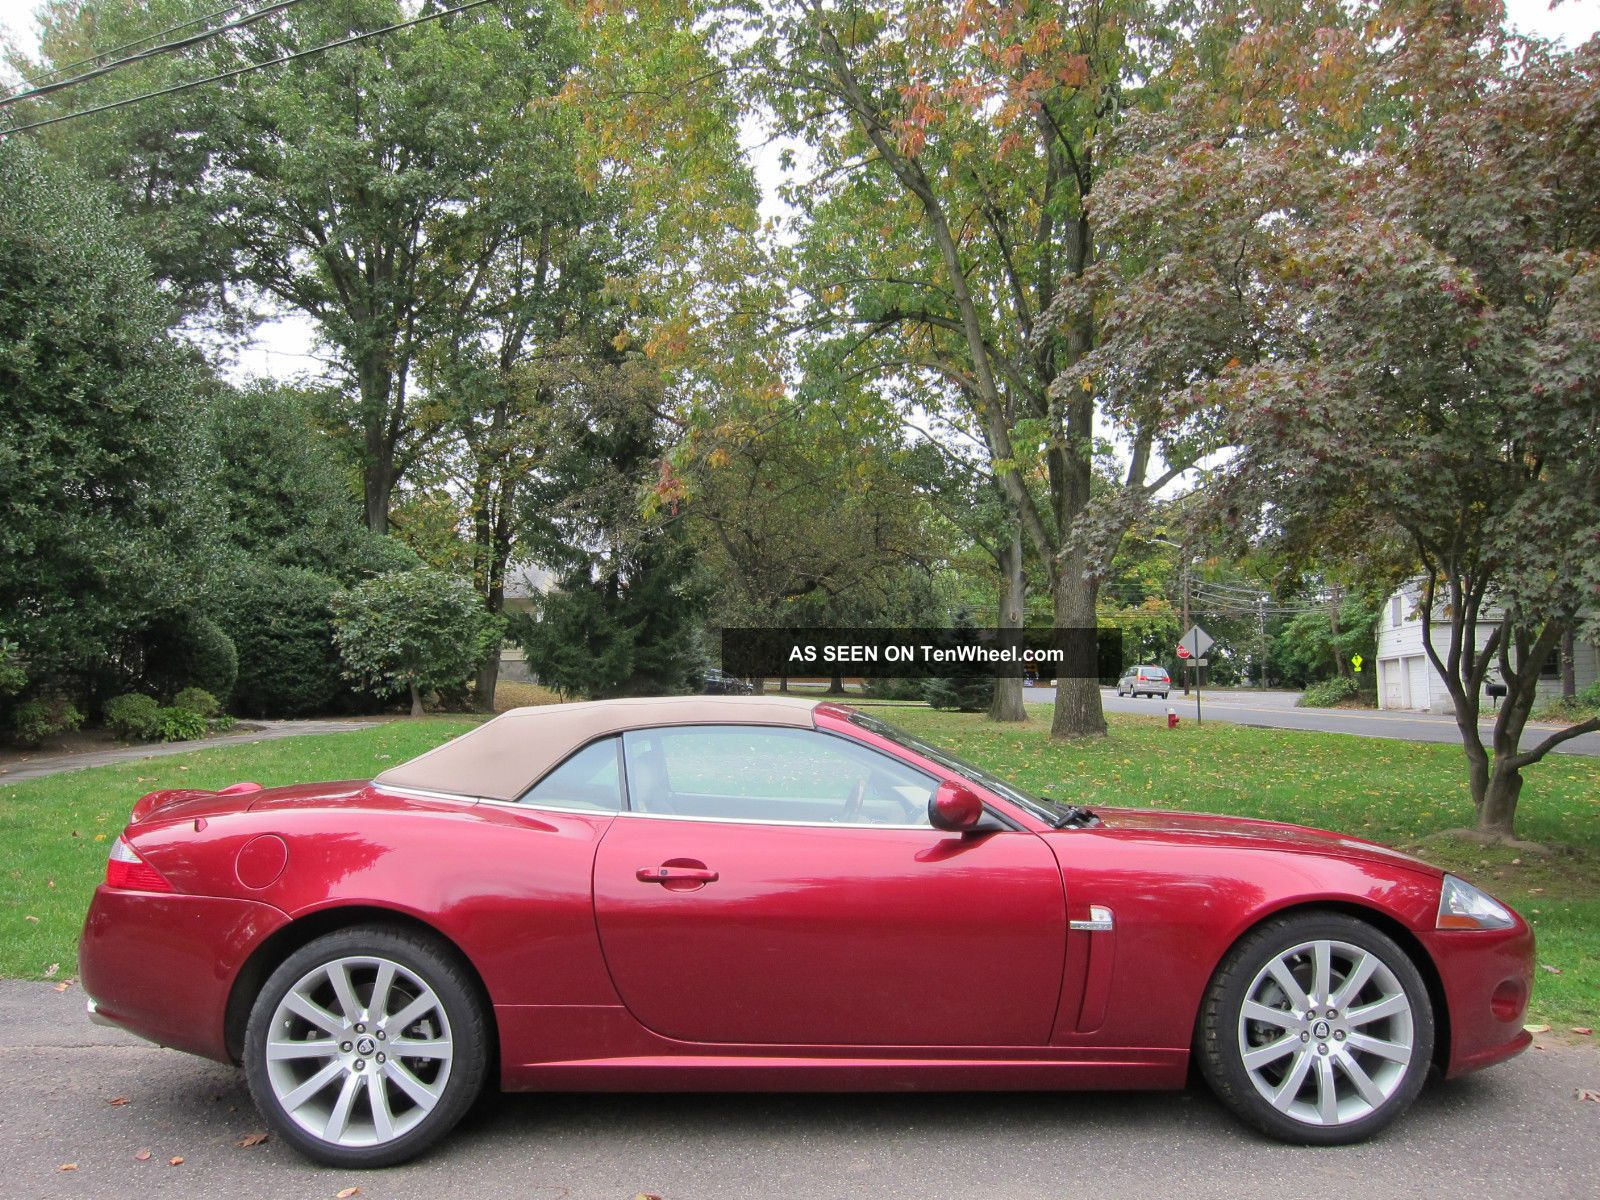 jaguar xk convertible 2007 priced to sell sharp. Black Bedroom Furniture Sets. Home Design Ideas